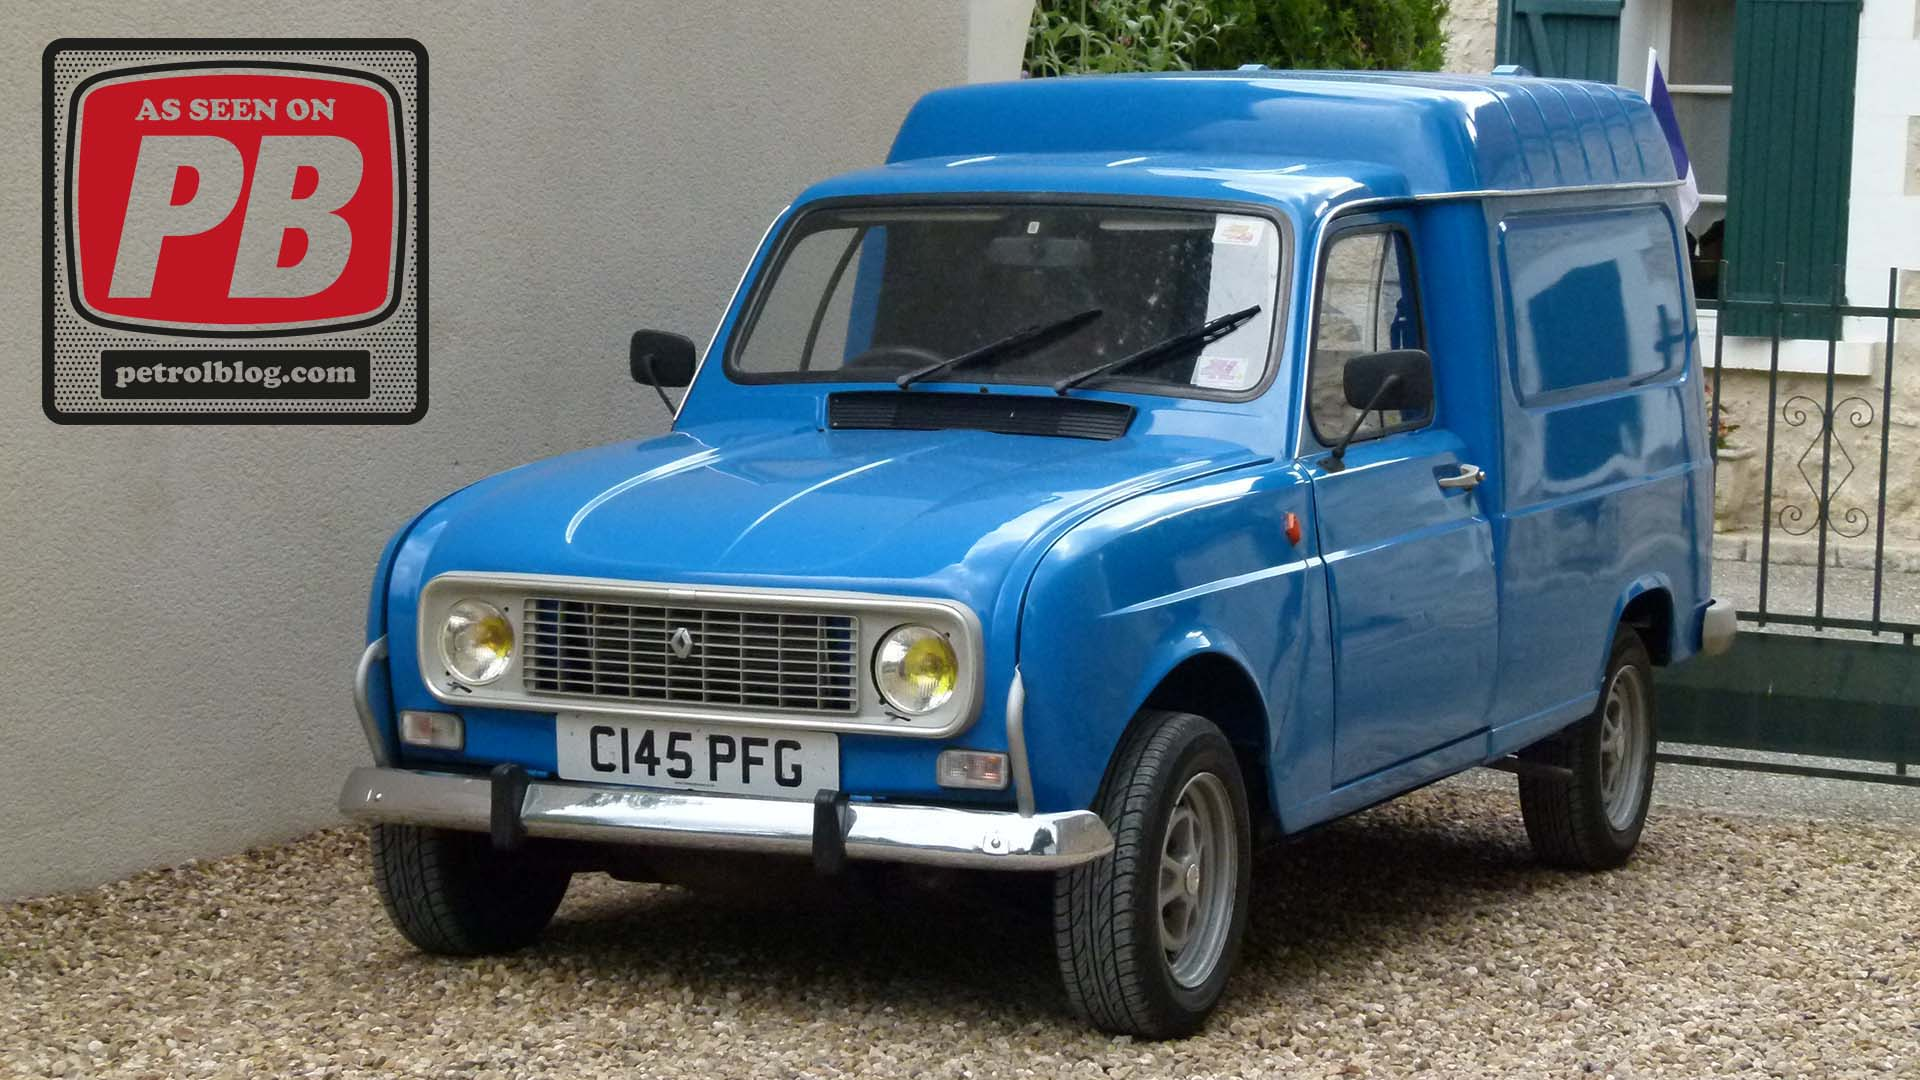 As Seen on PB Renault 4 F6